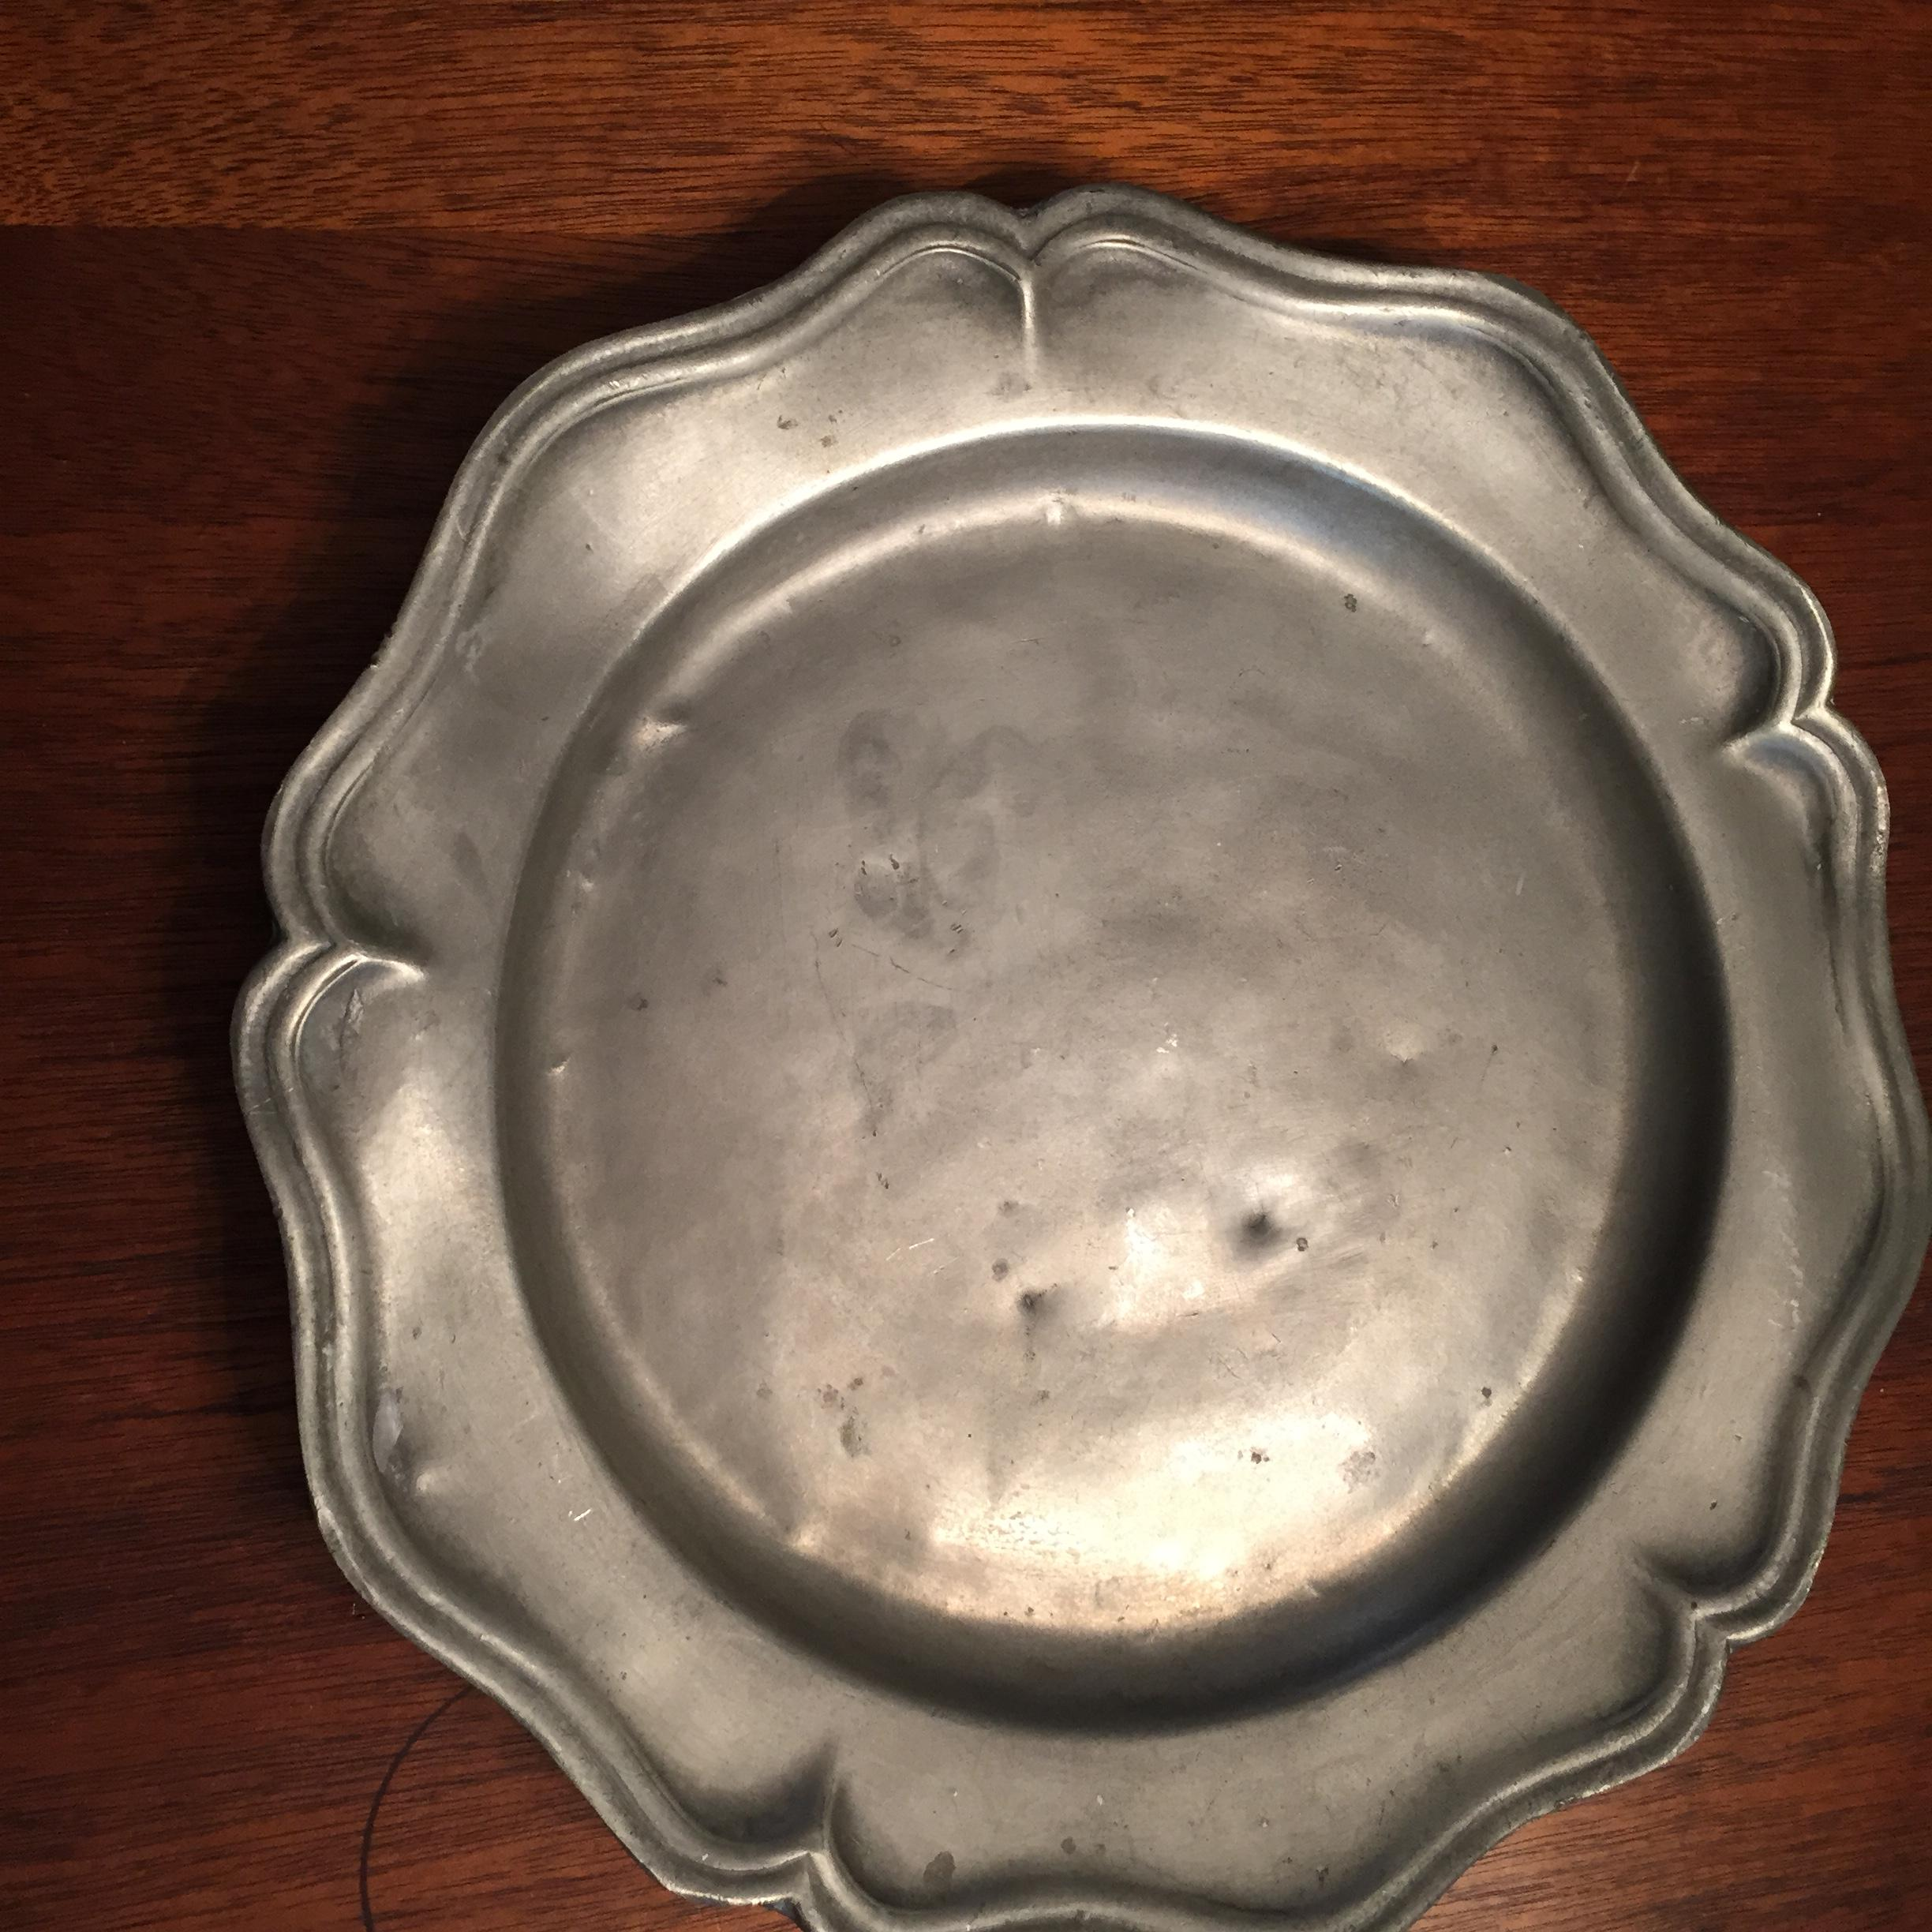 Antique Pewter Plates & Antique Pewter Plates antique appraisal | InstAppraisal